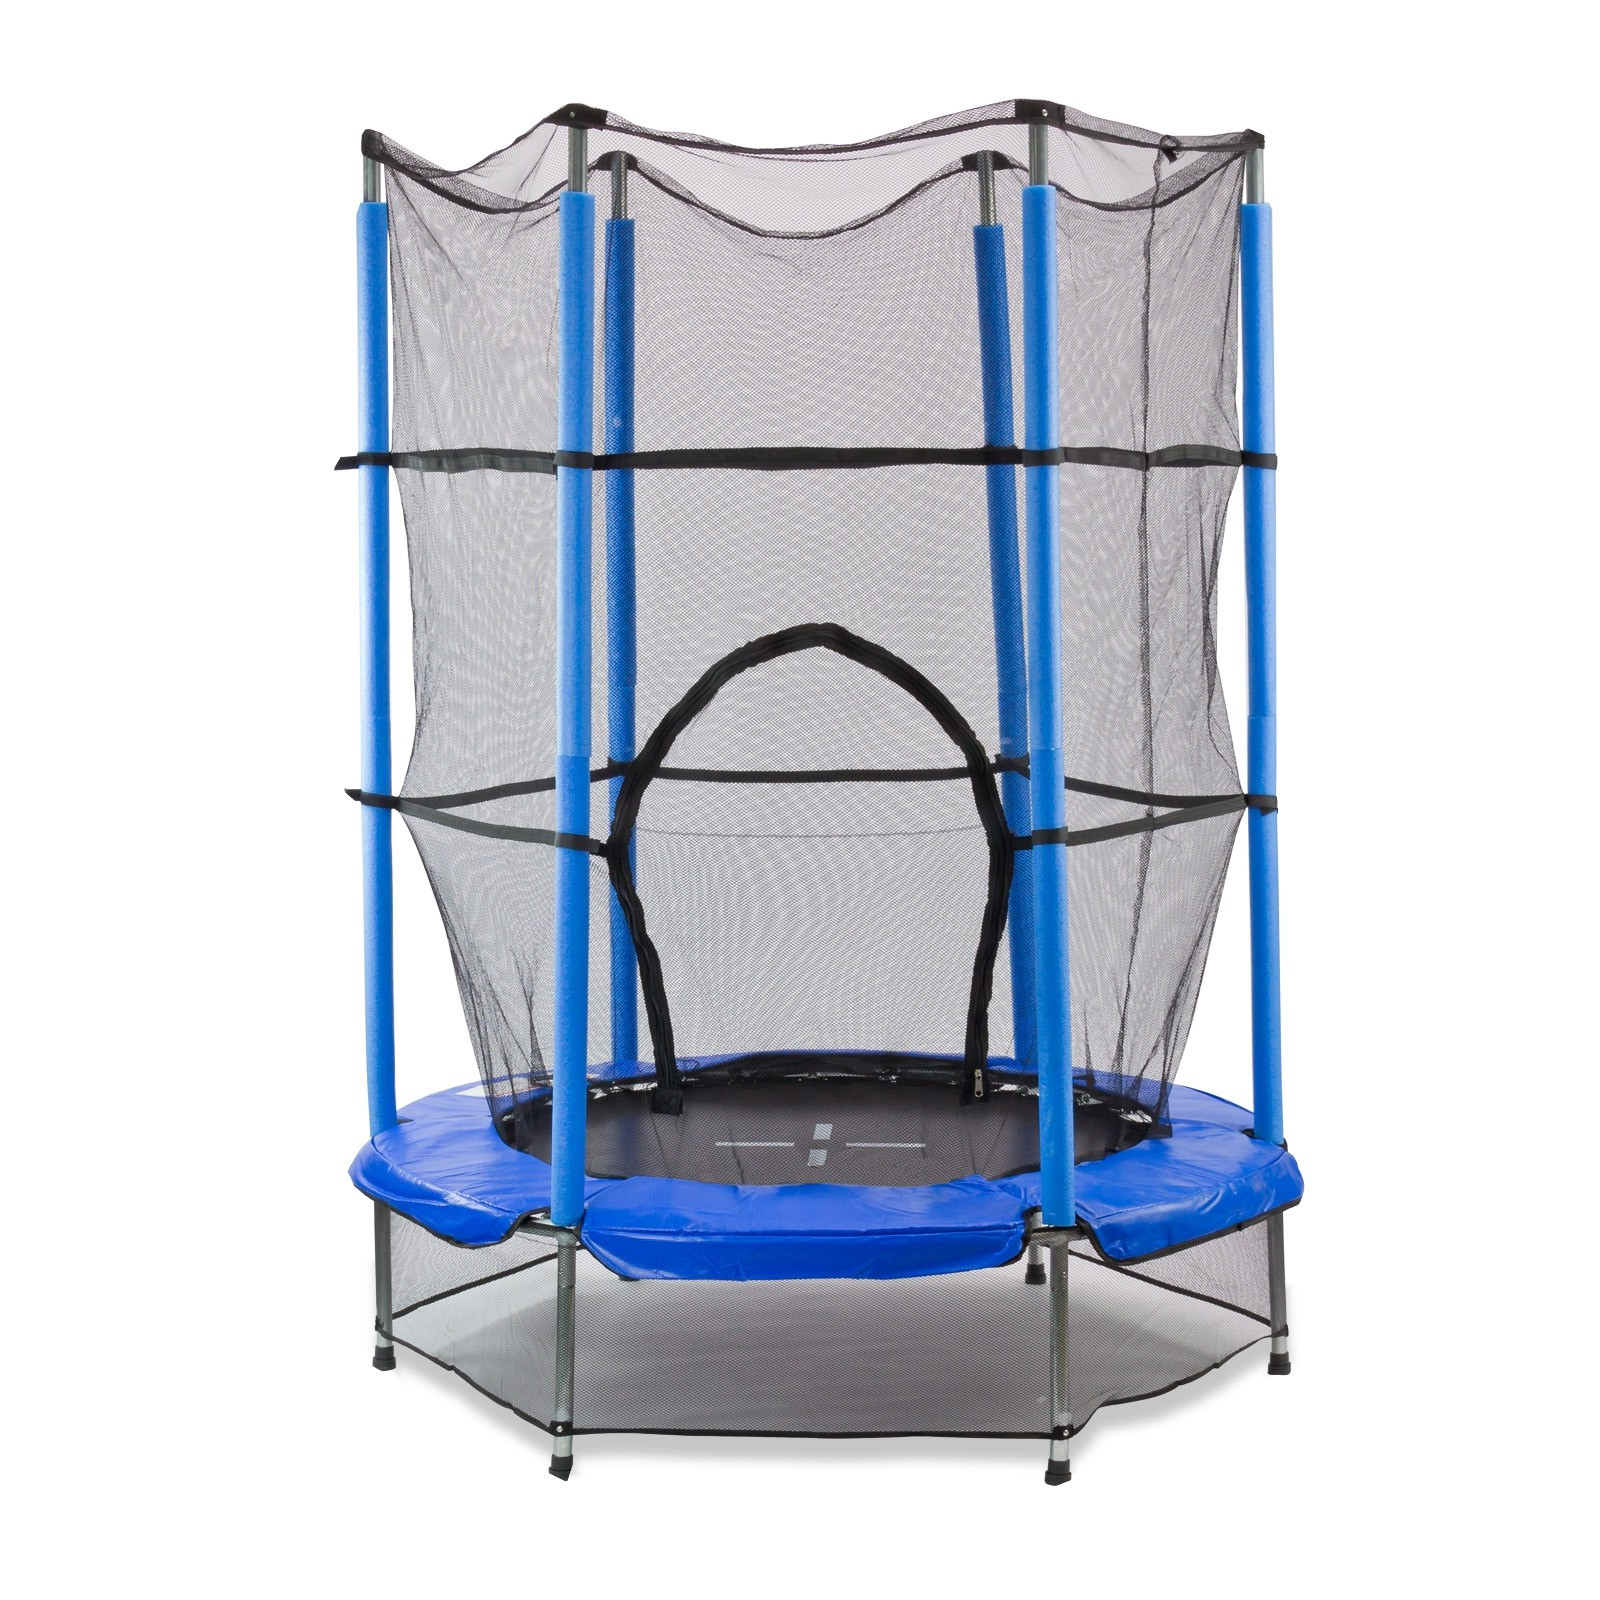 kindertrampolin trampolin 140 cm mit sicherheitsnetz joka. Black Bedroom Furniture Sets. Home Design Ideas